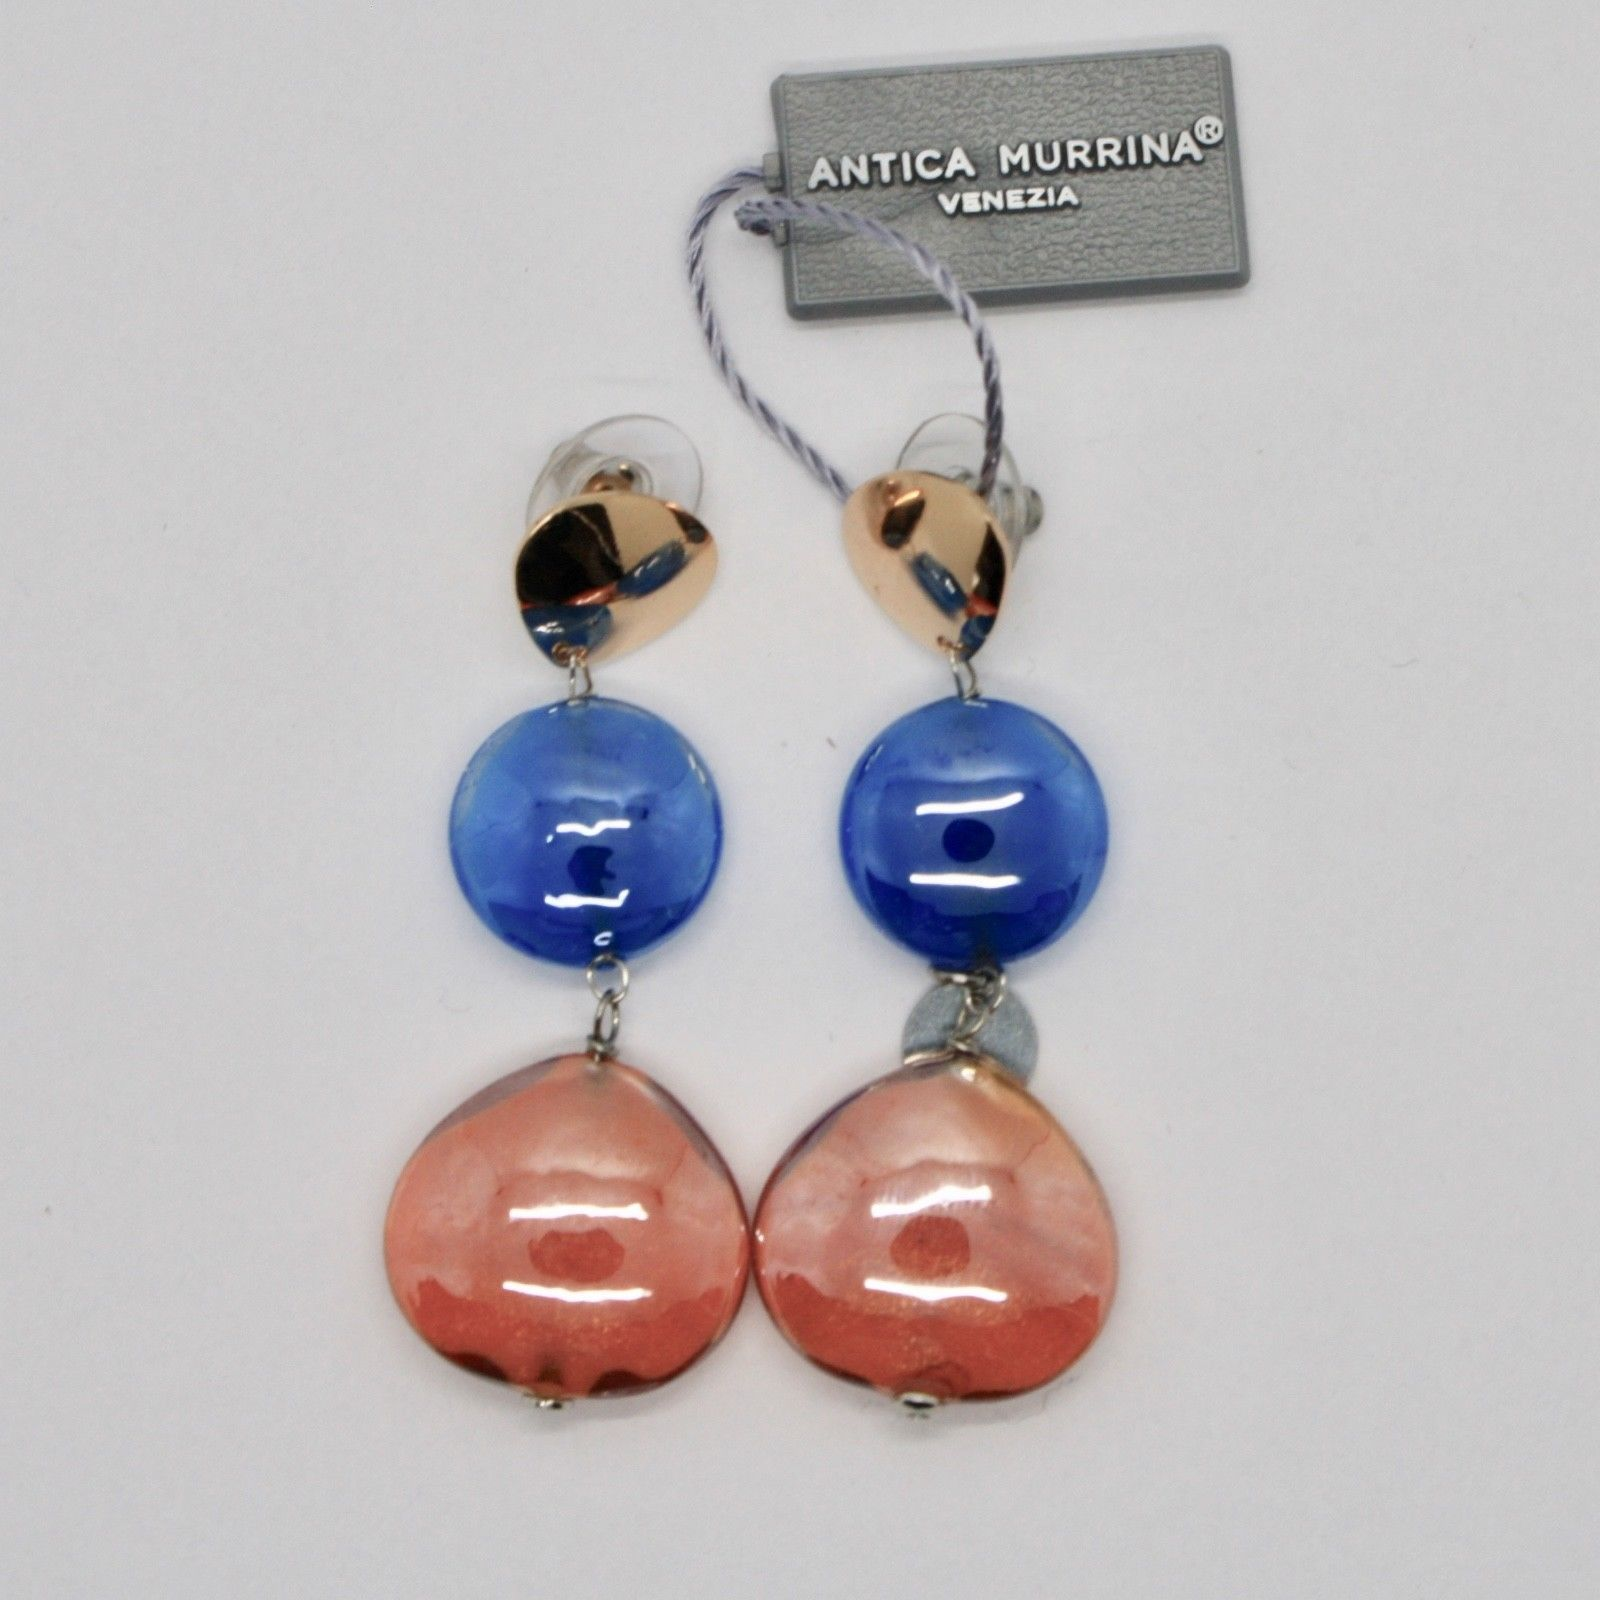 ANTICA MURRINA VENEZIA EARRINGS WITH MURANO GLASS ORANGE AND BLUE OR589A46